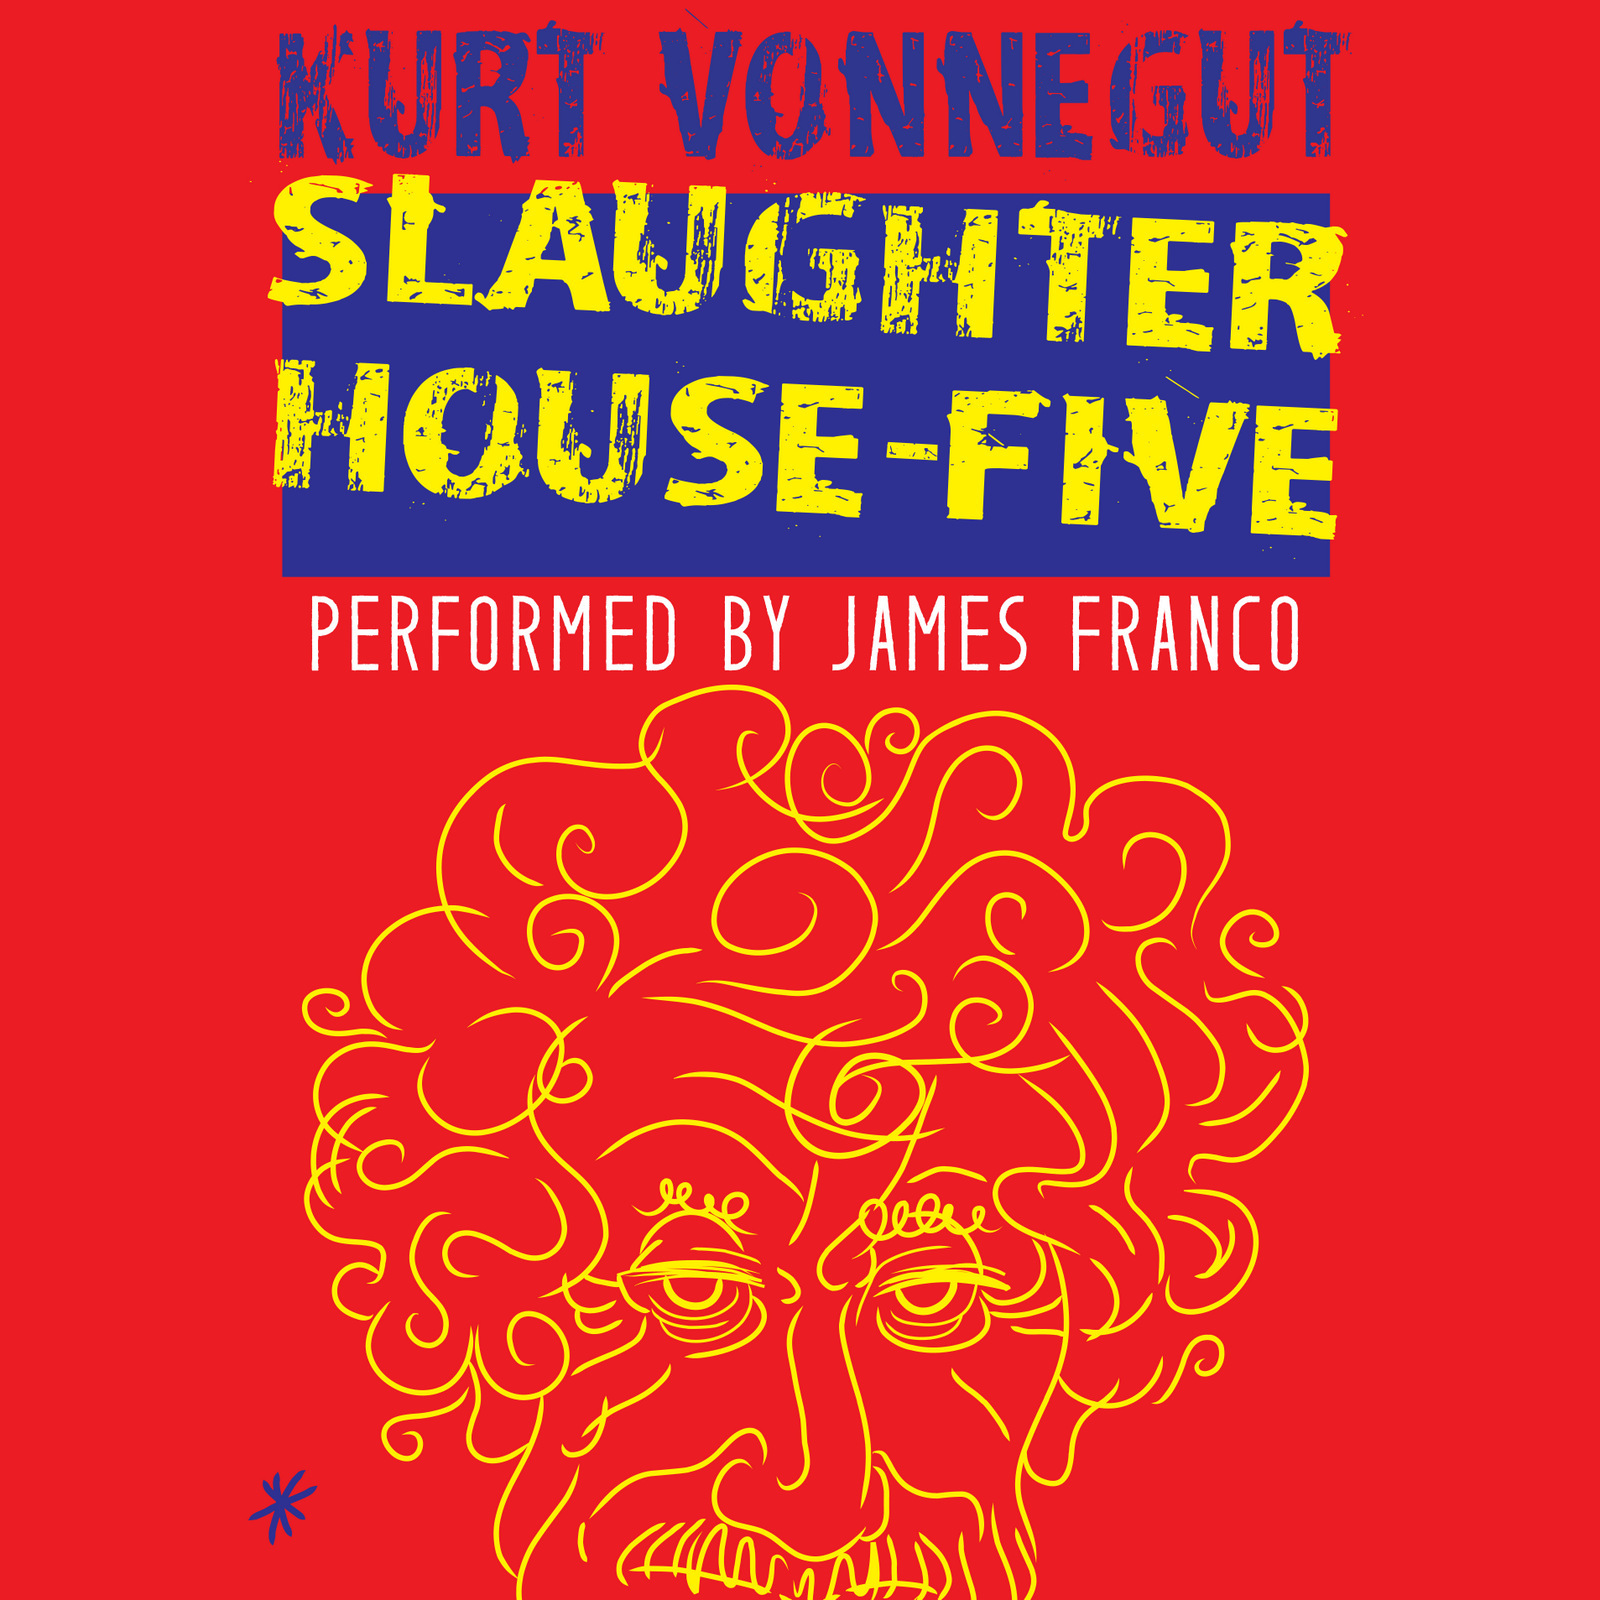 """the melancholy and mourning of billy pilgrim in slaughterhouse five a novel by kurt vonnegut The present paper seeks to closely explore kurt vonnegut""""s slaughterhouse-five in terms of judith herman""""s surveys and categorization of post-traumatic stress disorder symptoms it is an attempt."""